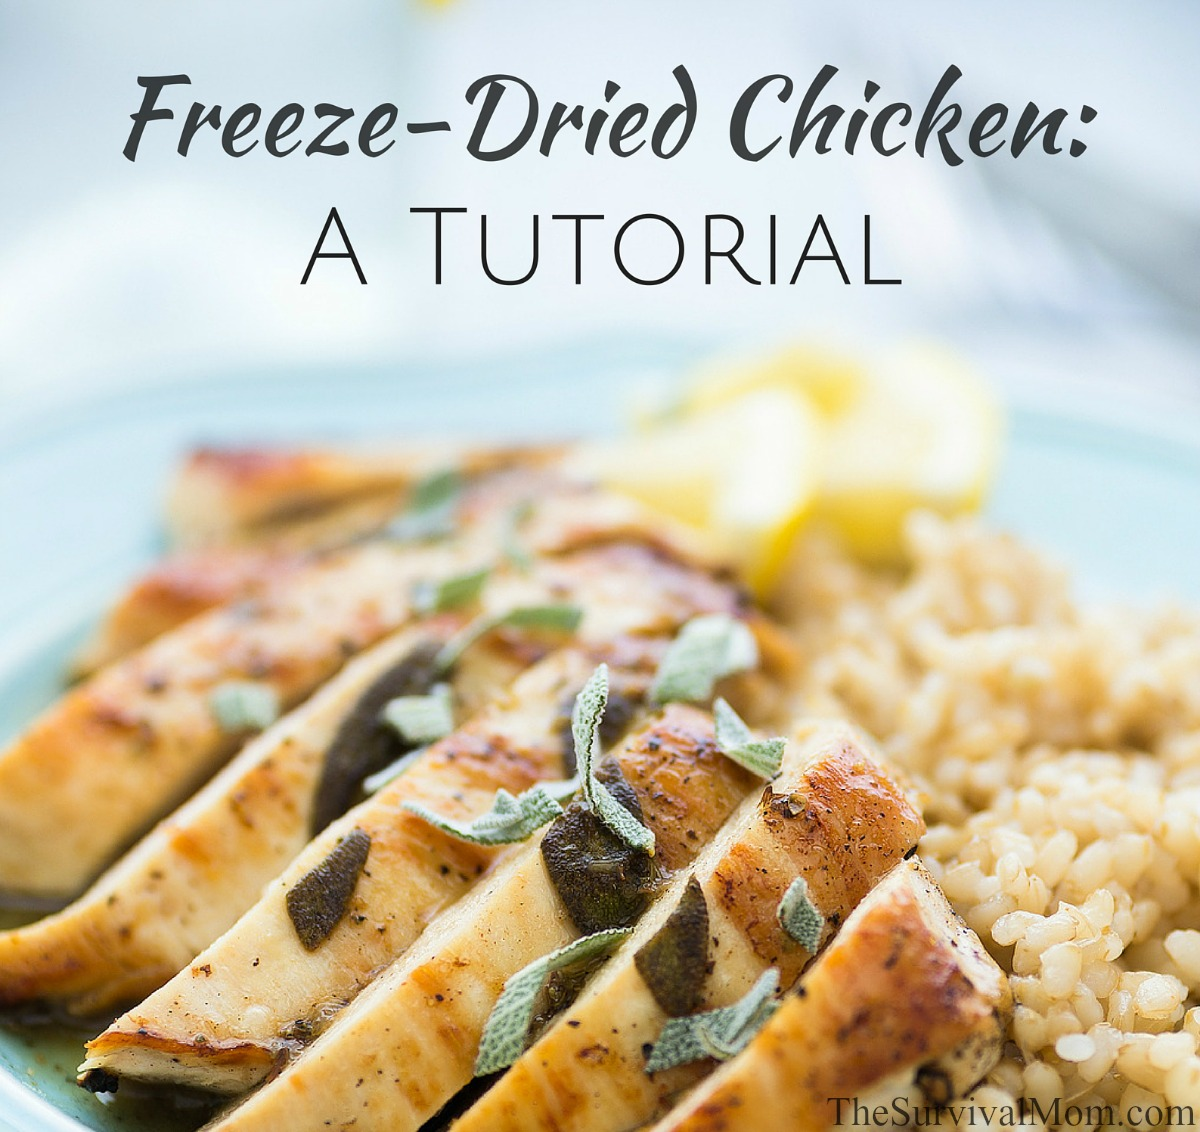 Freeze-Dried Chicken: A Tutorial via The Survival Mom